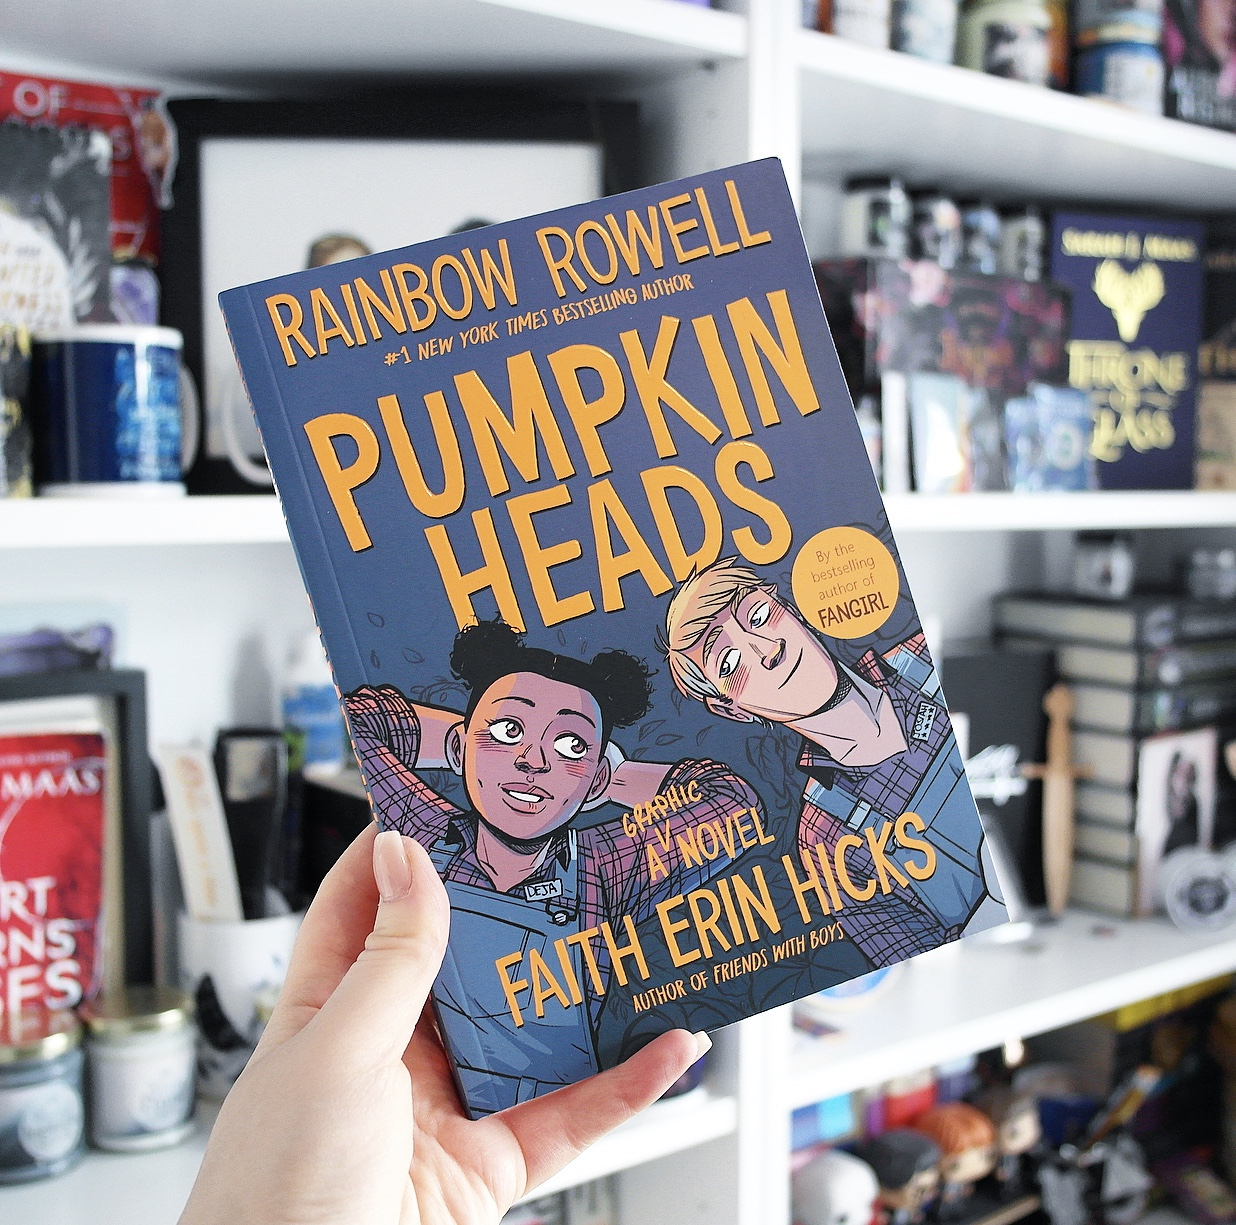 Pumpkinheads by Rainbow Rowell and Faith Erin Hicks.